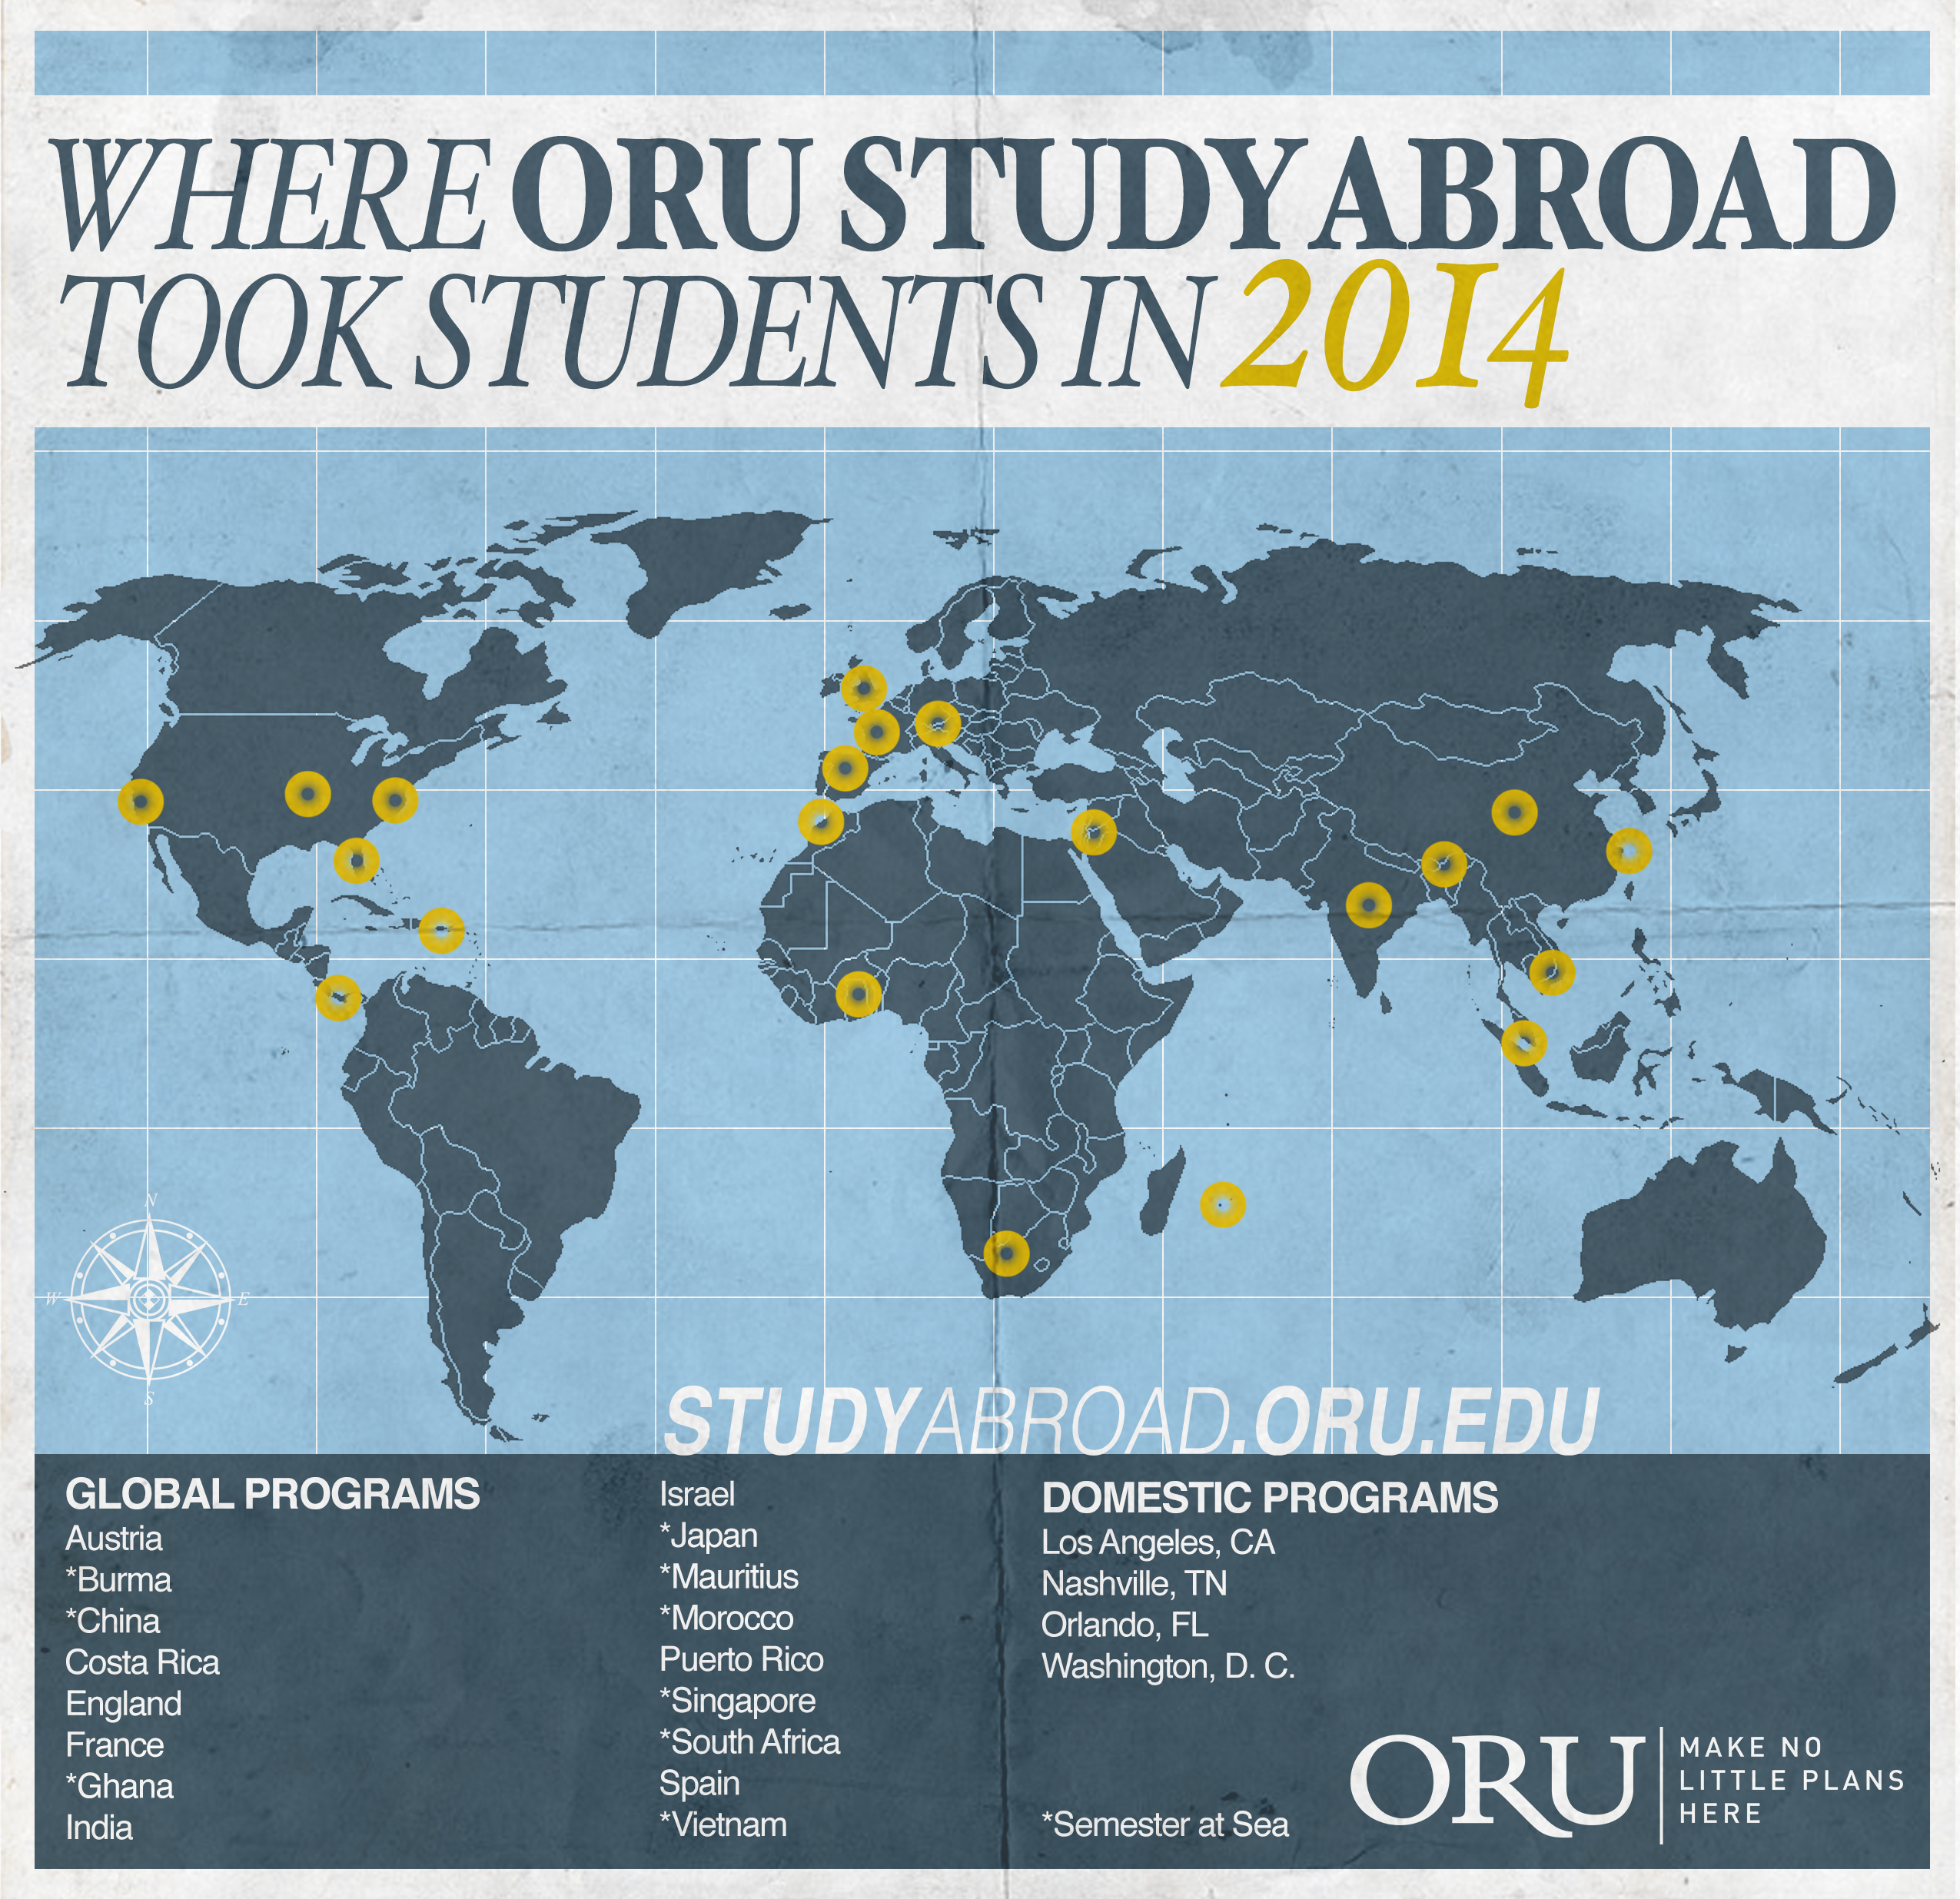 Where ORU Study Abroad Took Students in 2014